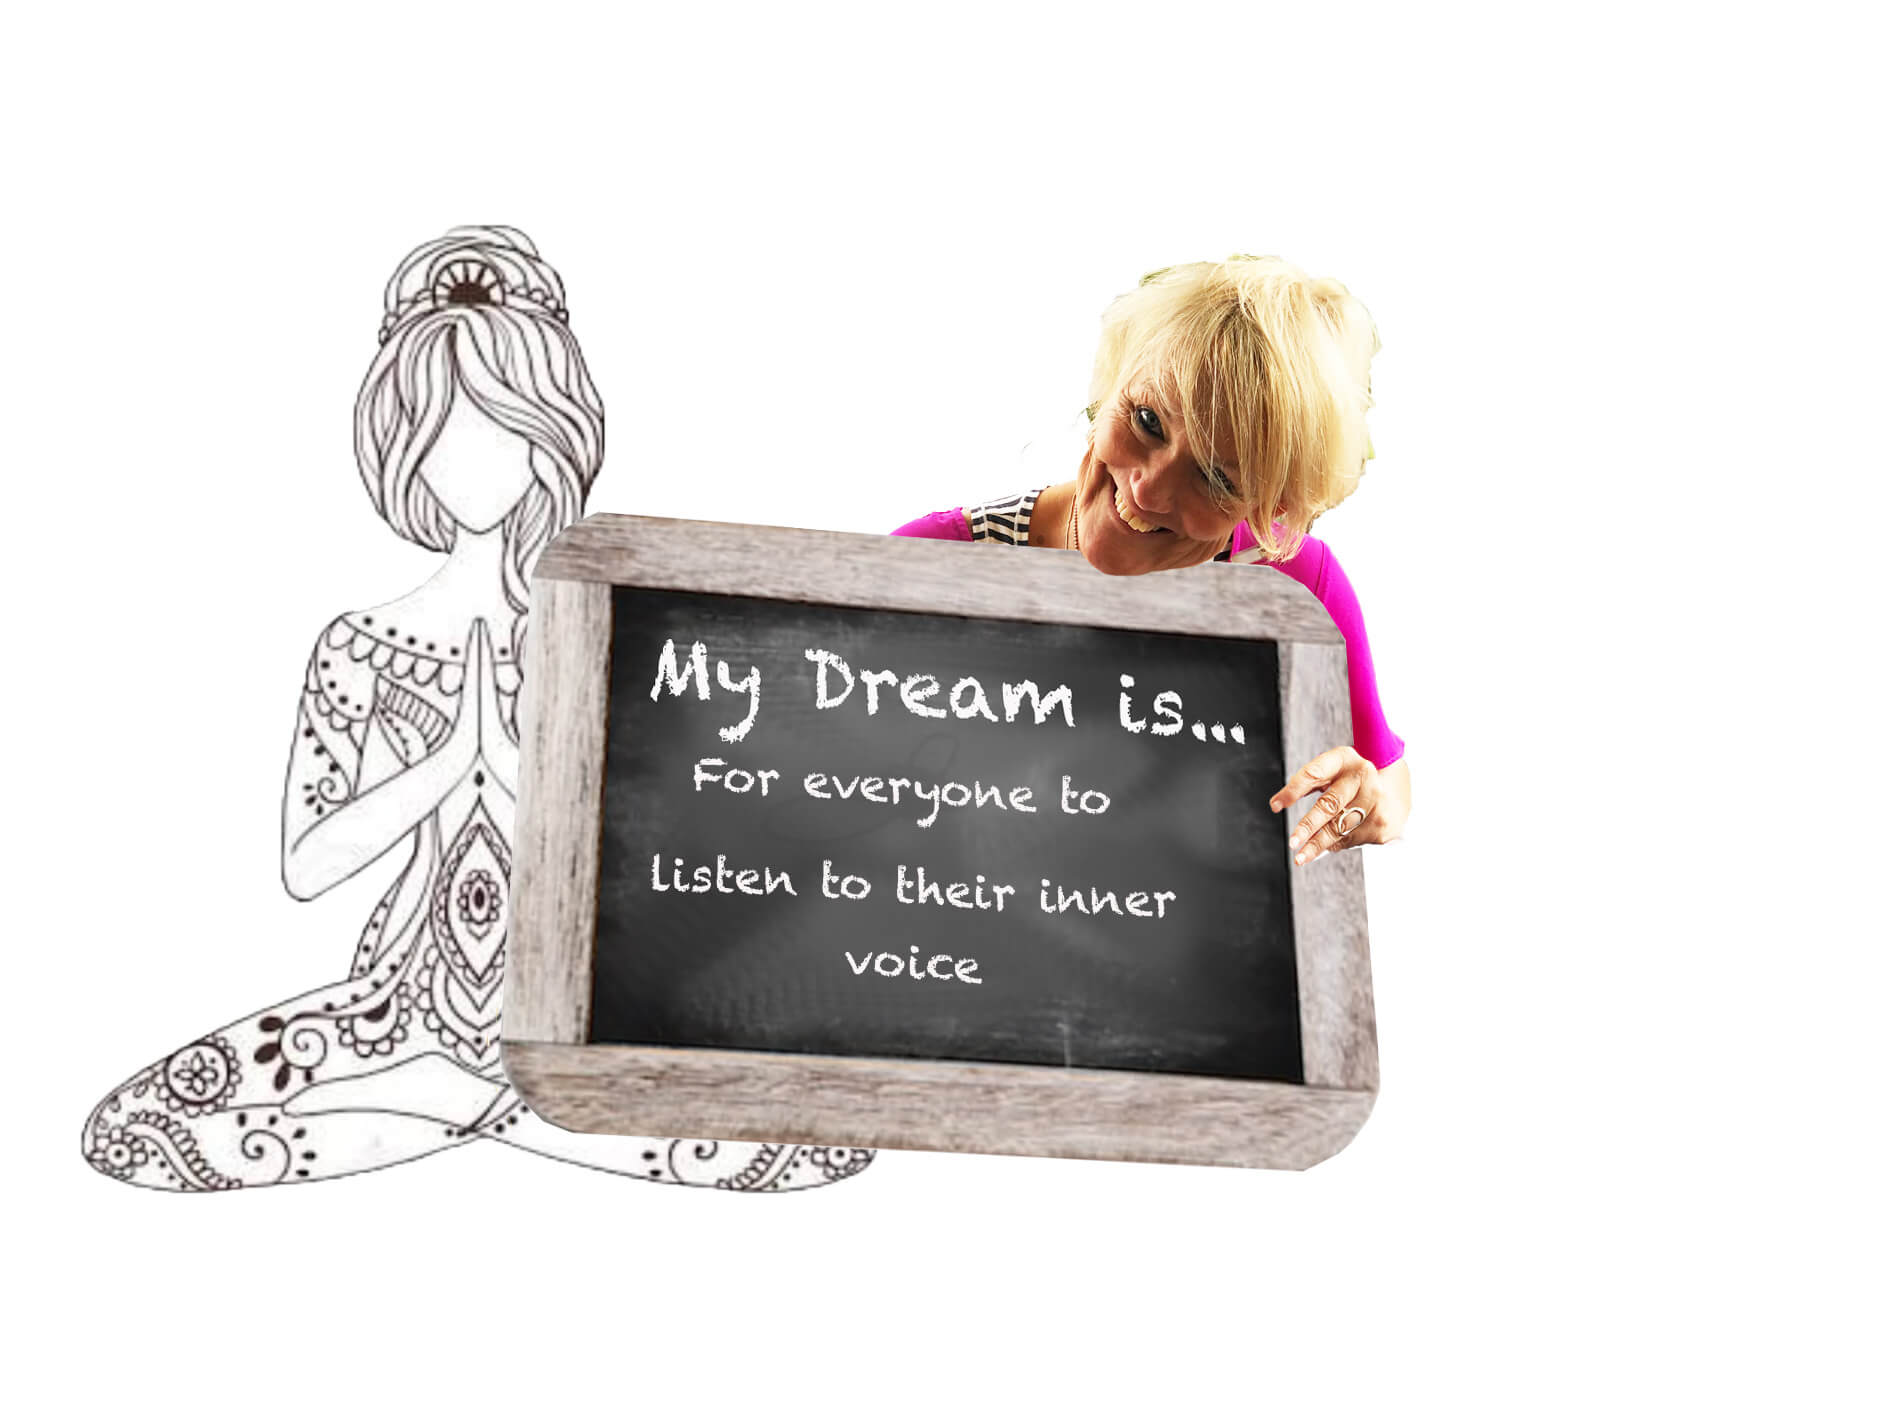 My Dream is for everyone to listen to their inner voice